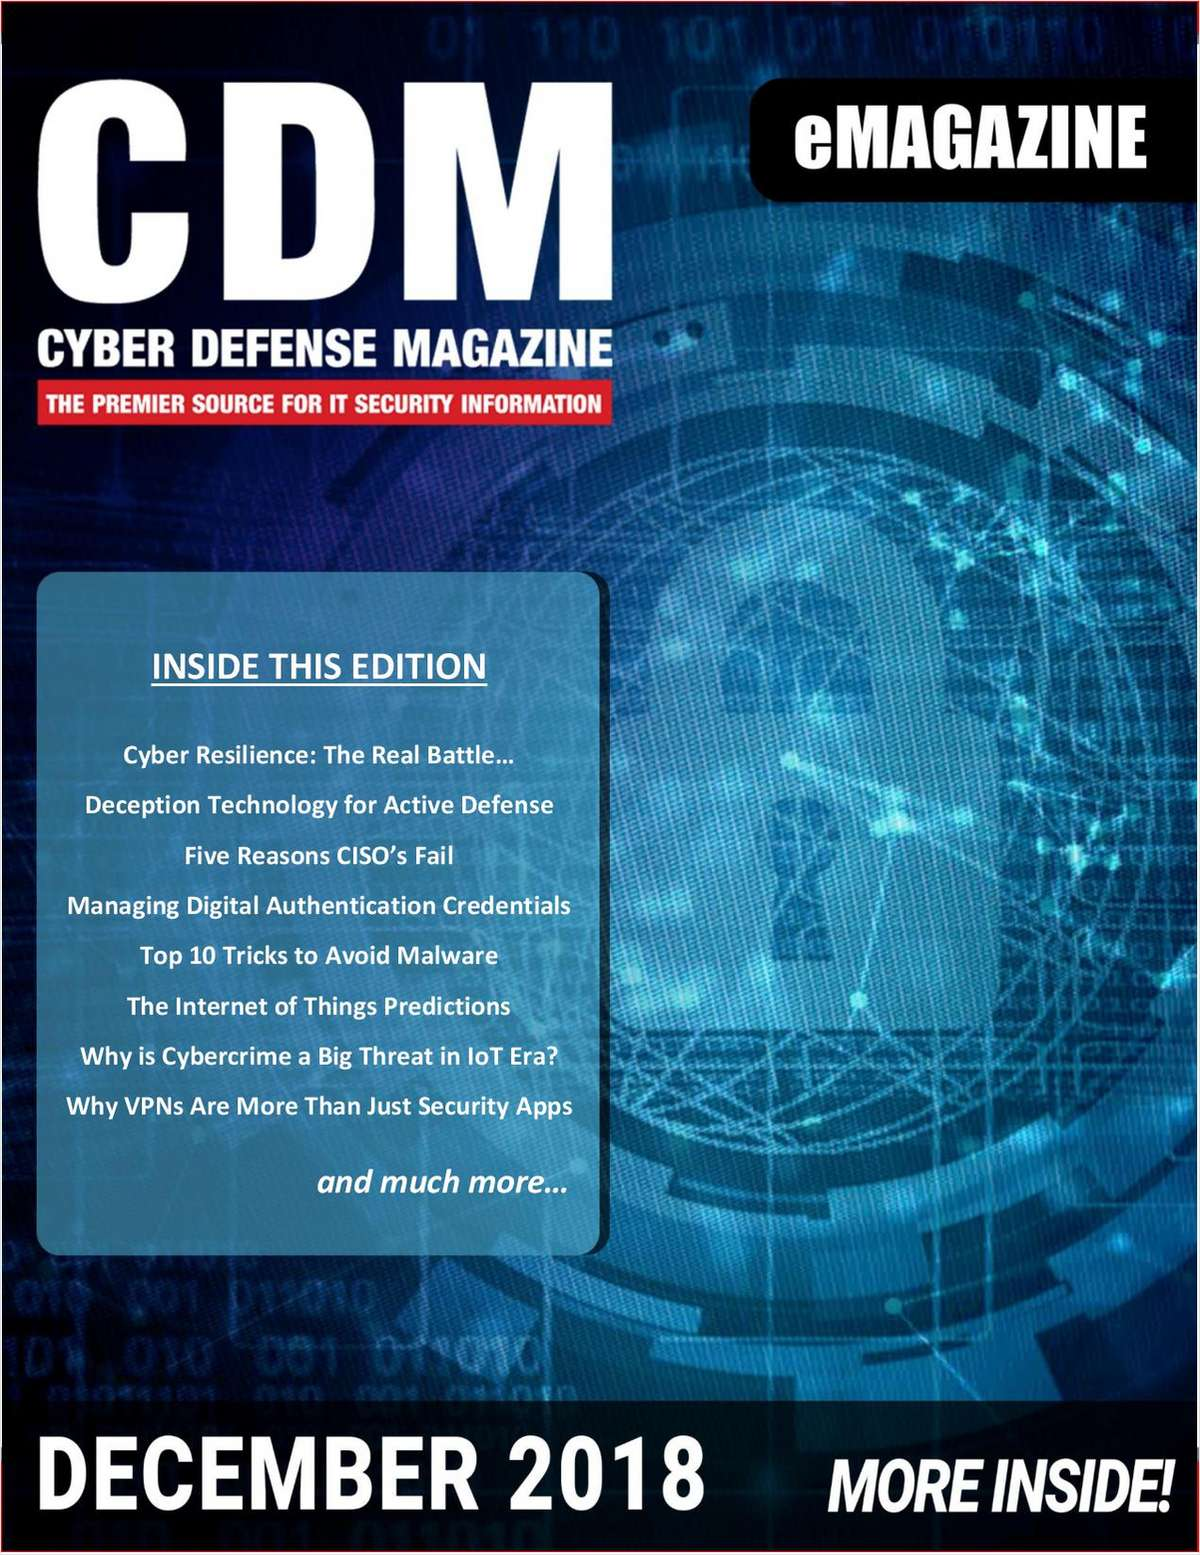 Cyber Defense eMagazine - Top 10 Tricks to Avoid Malware - December 2018 Edition